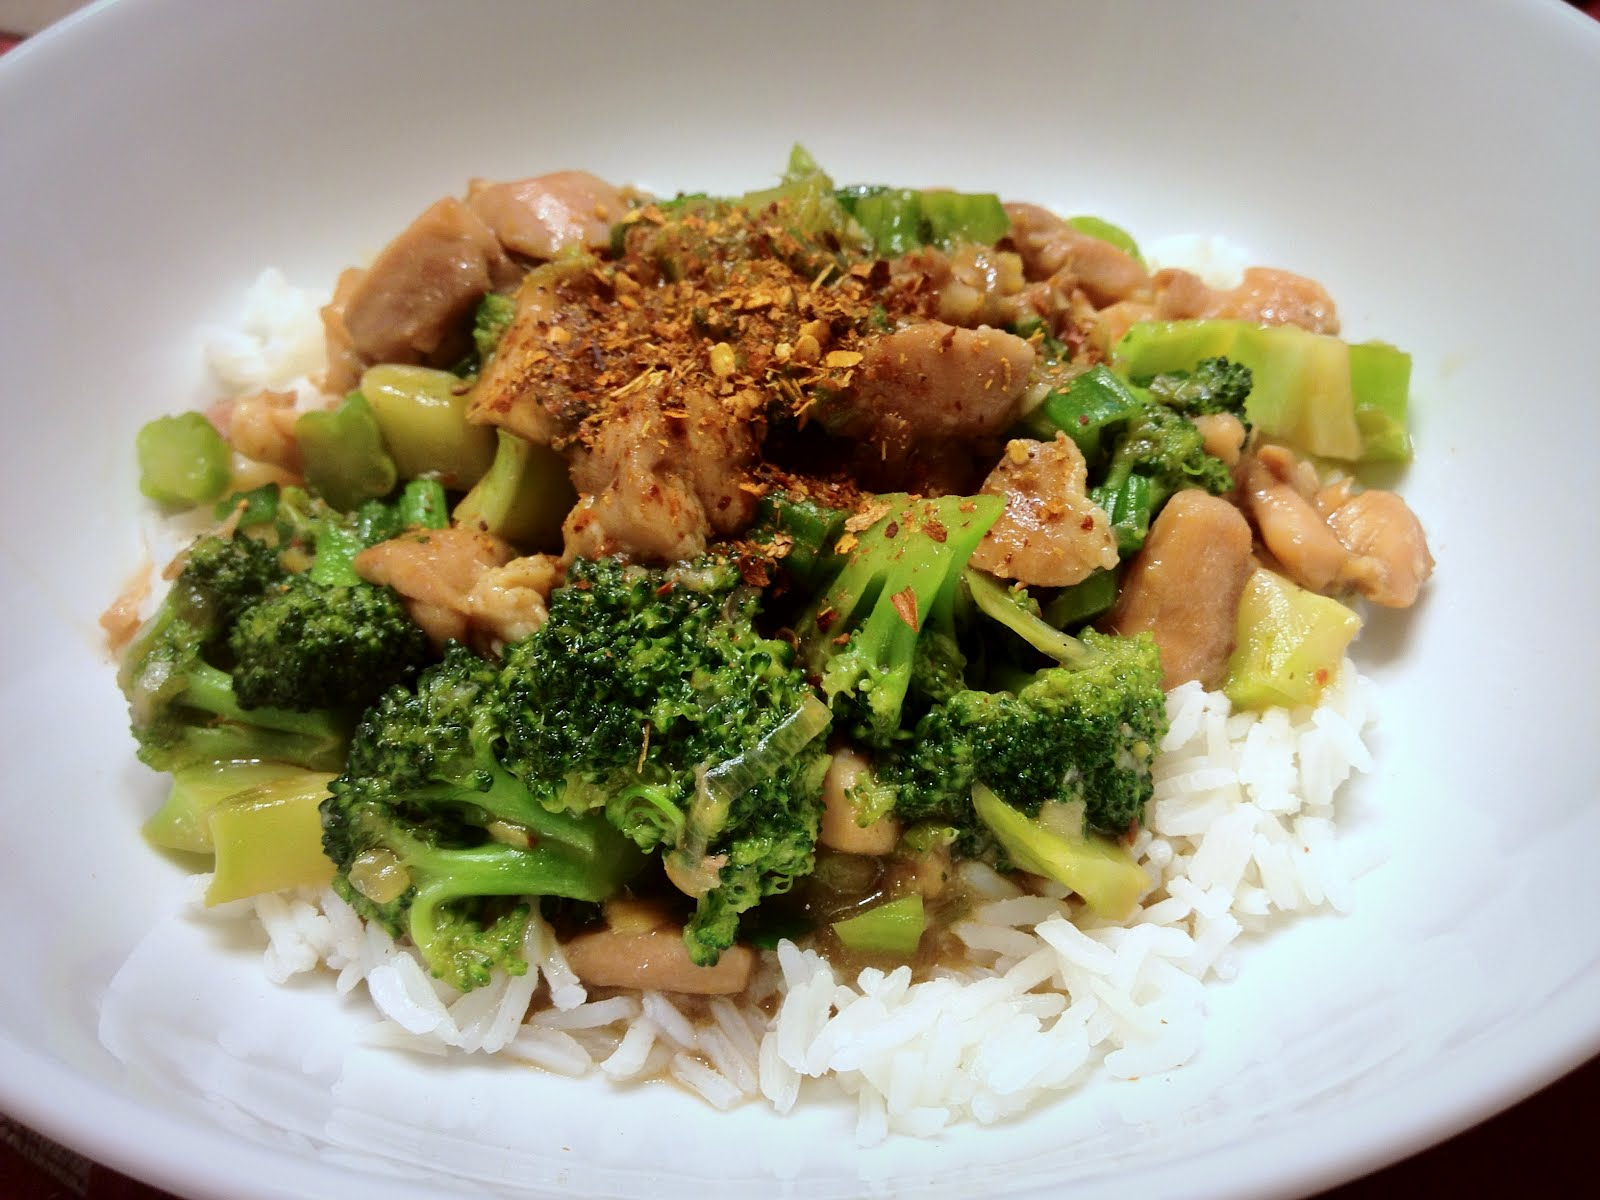 Alosha's Kitchen: Chicken and Broccoli Stir Fry